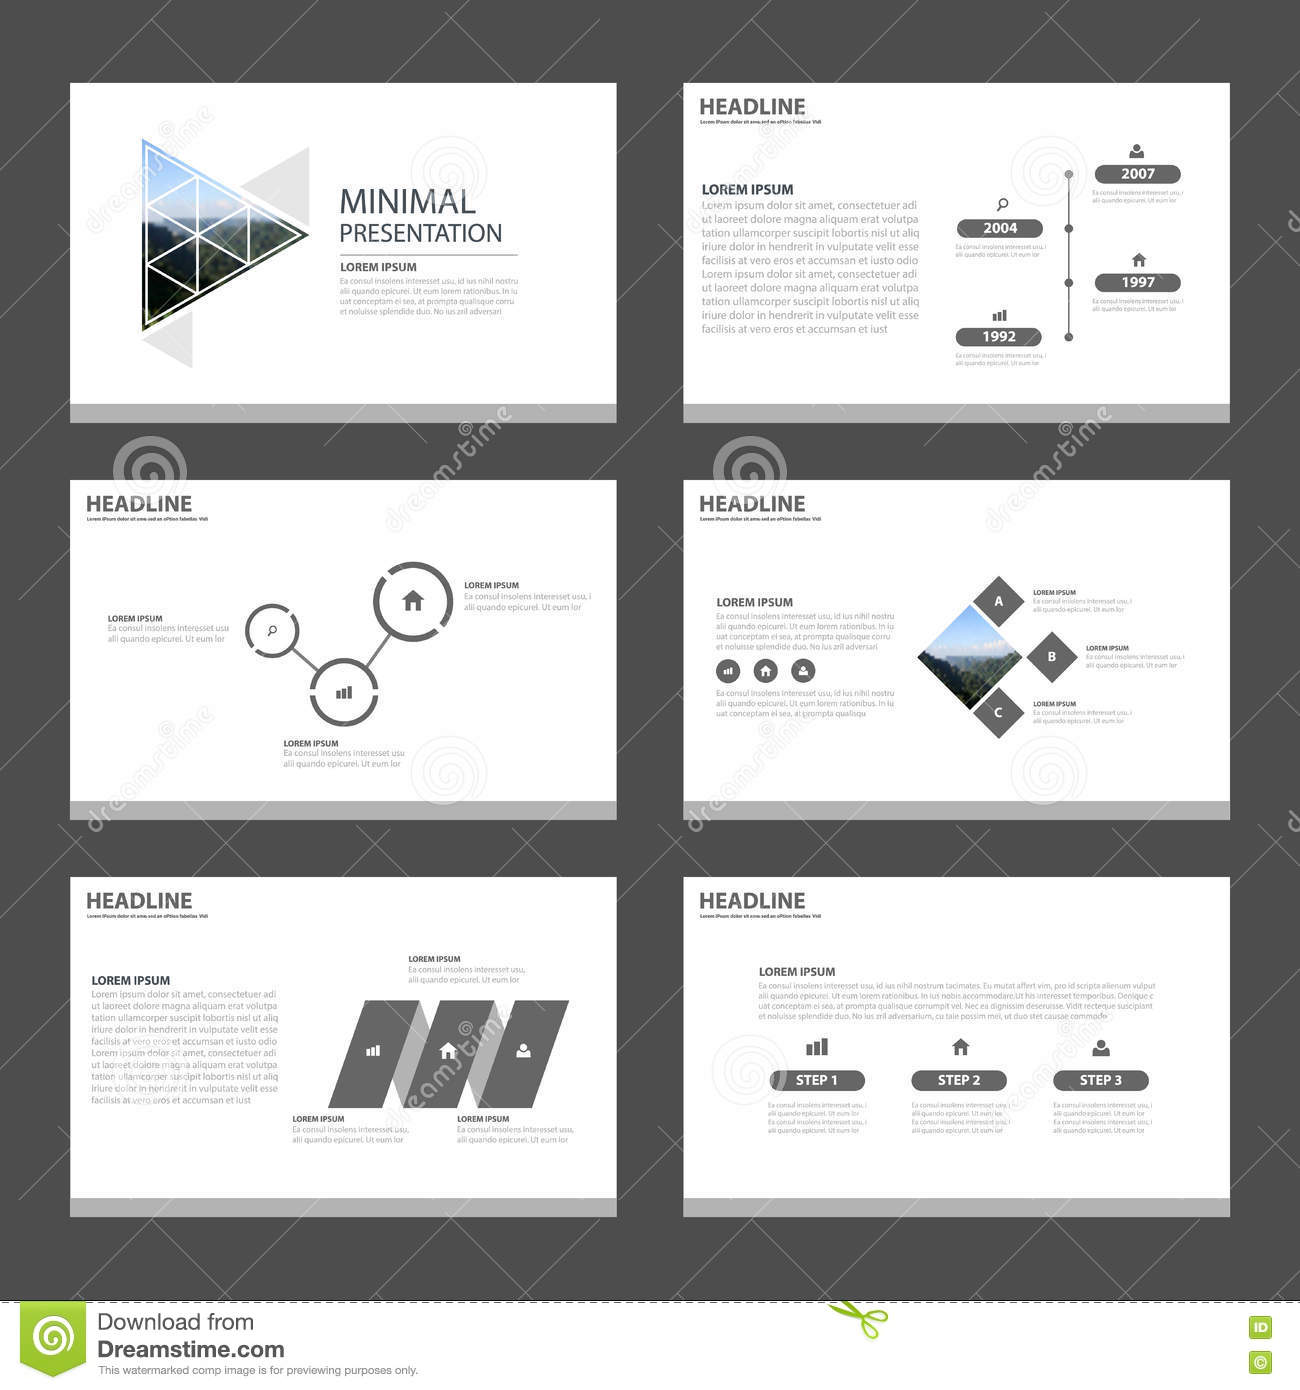 minimal and clean presentation templates infographic stock